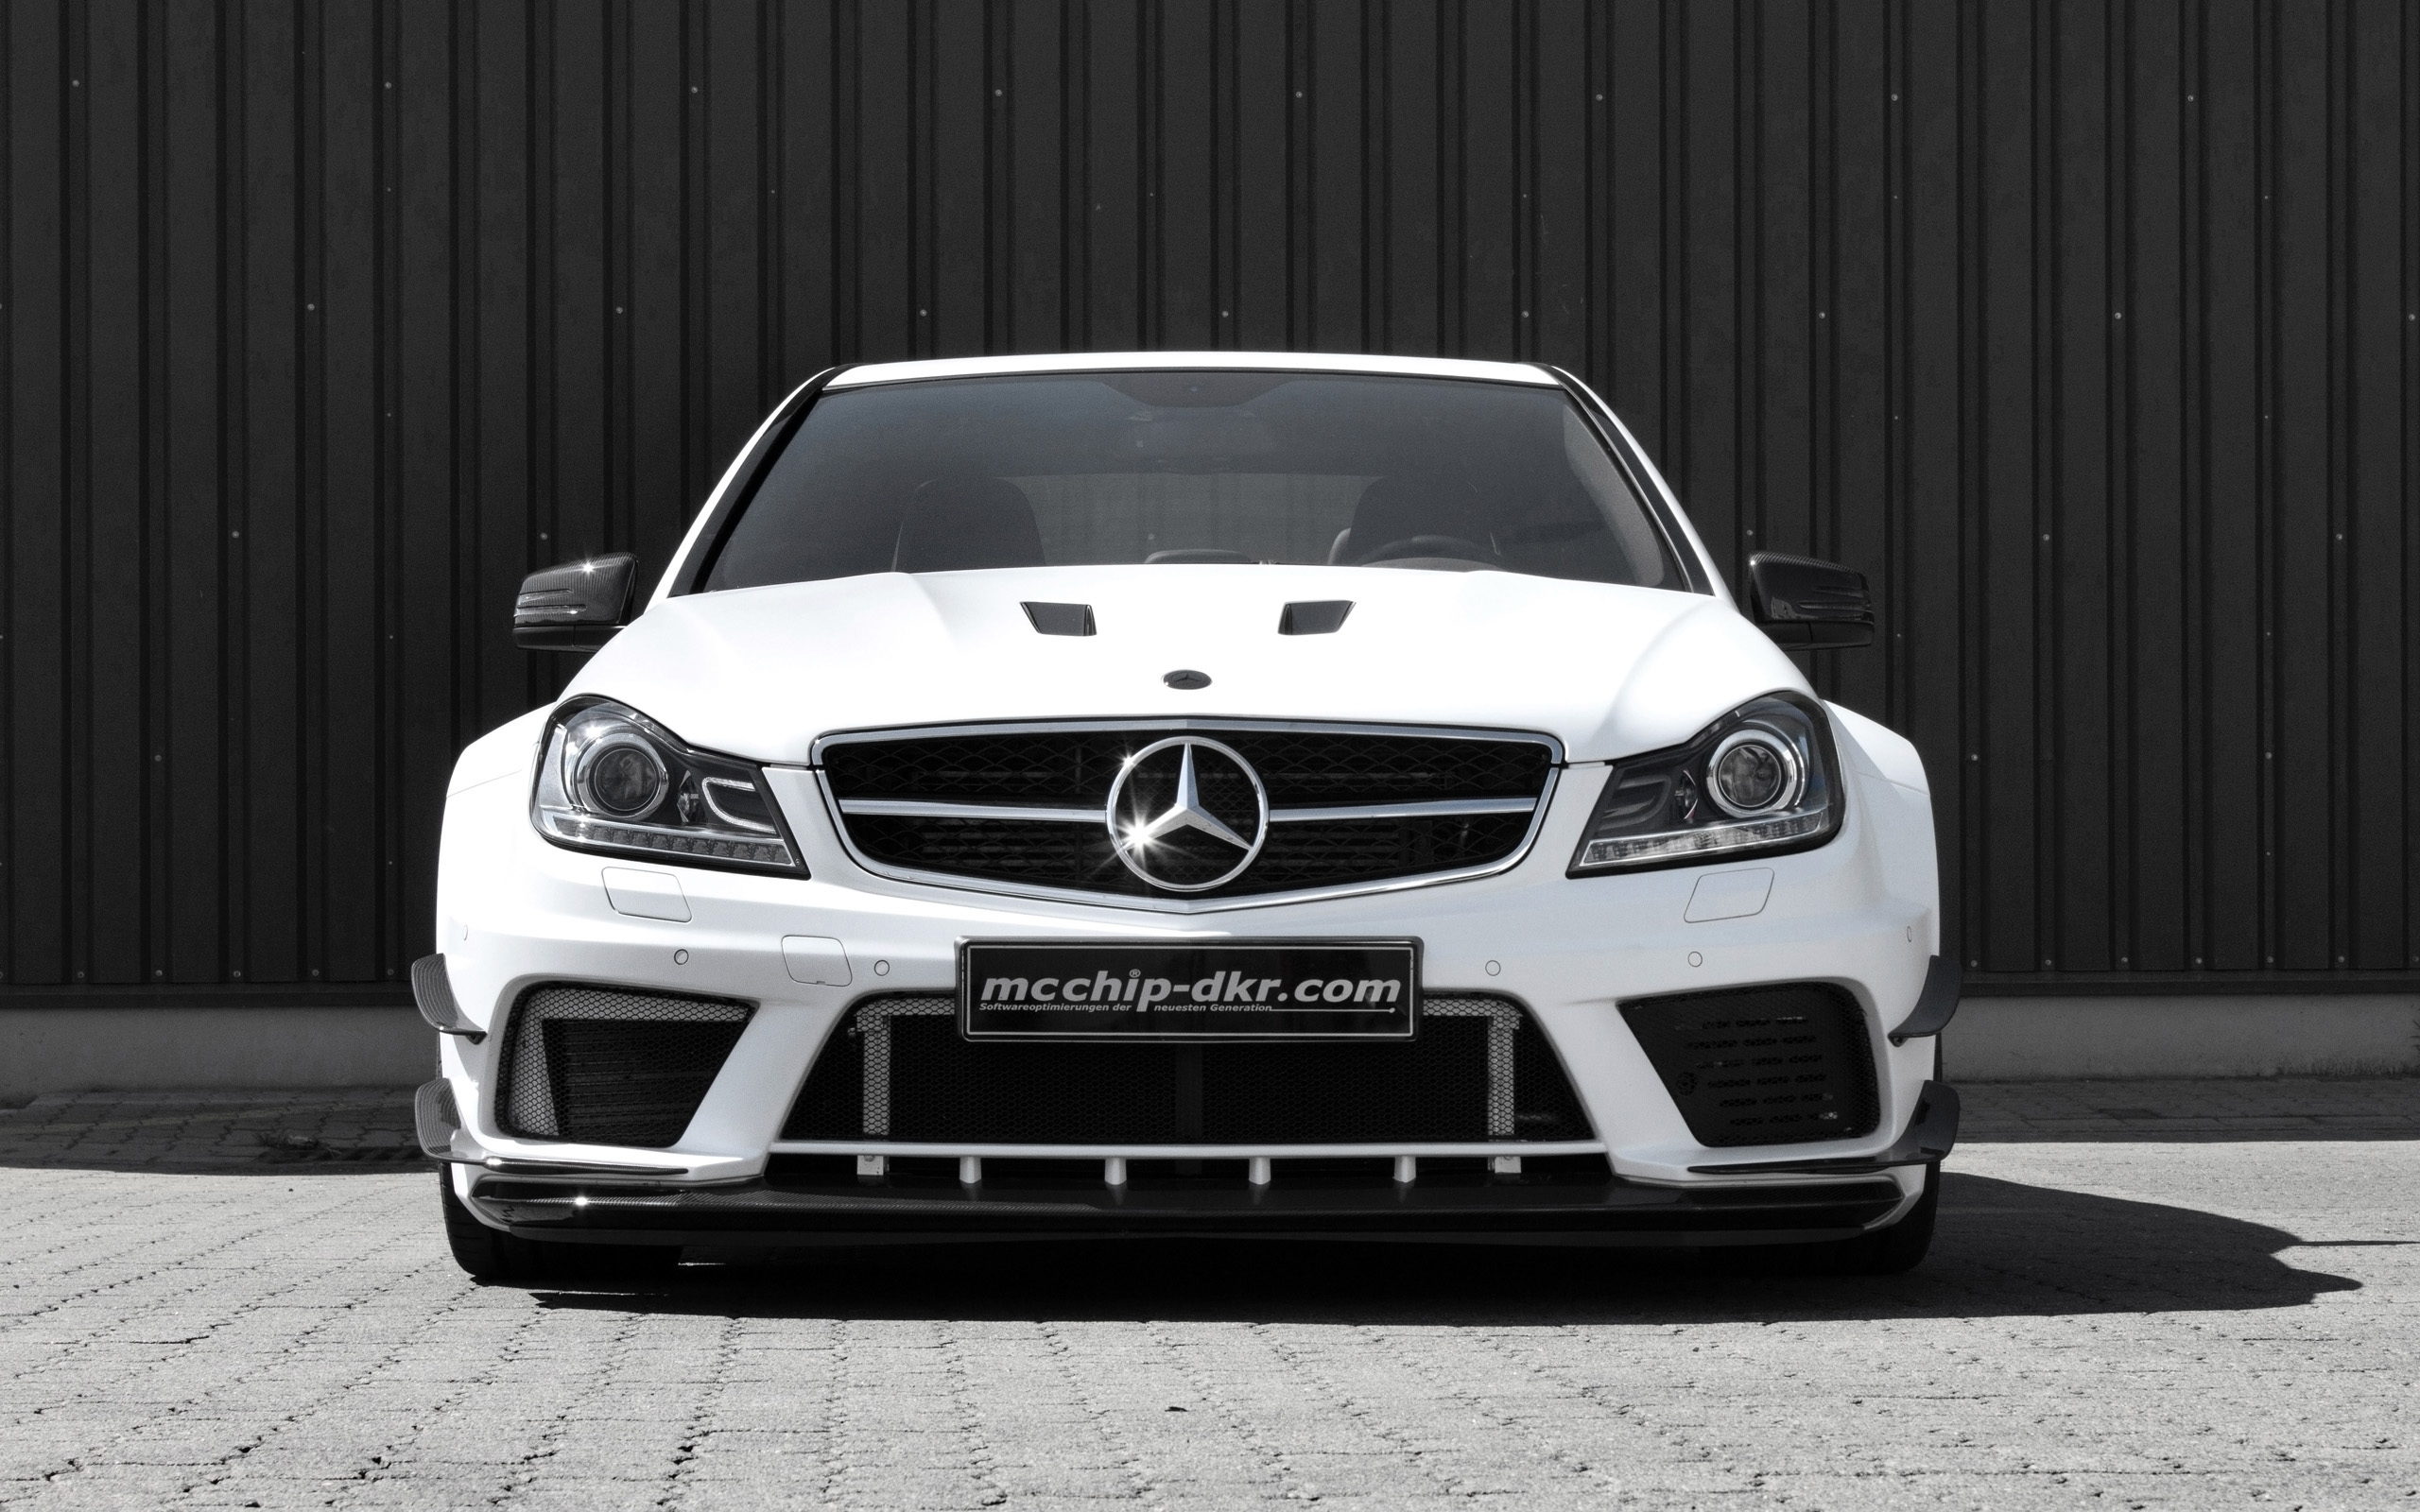 2014 mercedes benz c63 amg mc8xx by mcchip dkr car for 2014 mercedes benz c63 amg coupe